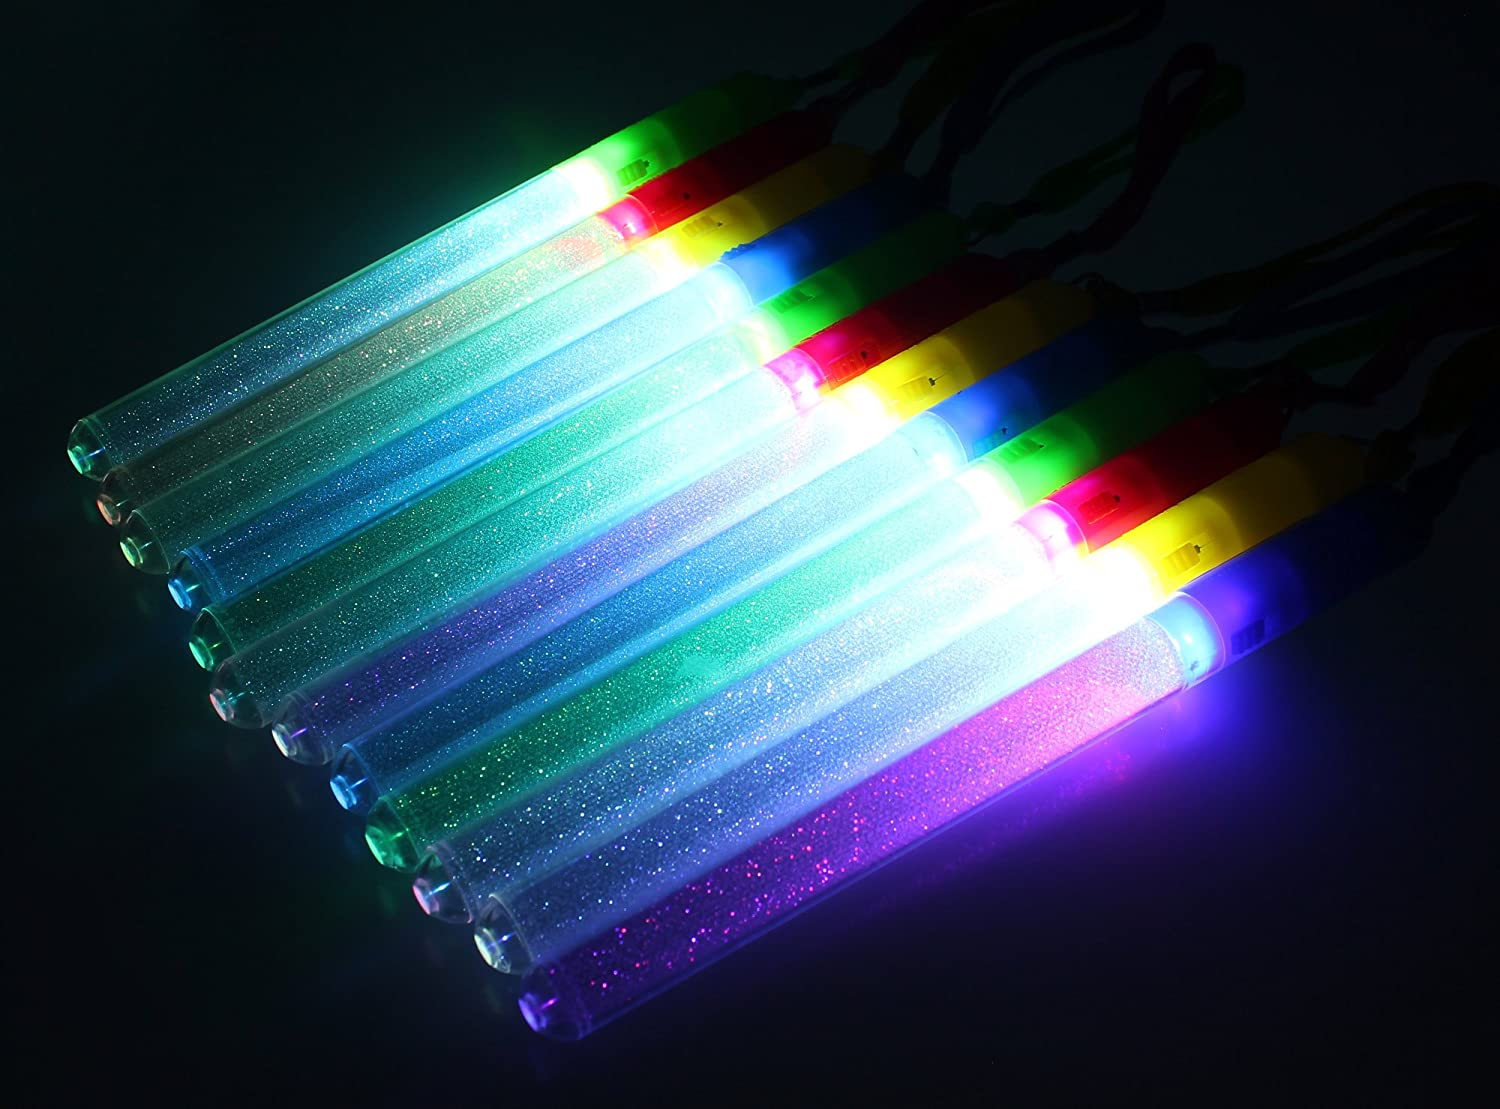 24 Pack of Colorful Flashing LED Clear Light Up Toy Wand Stick for Parties Events Functions Celebrations